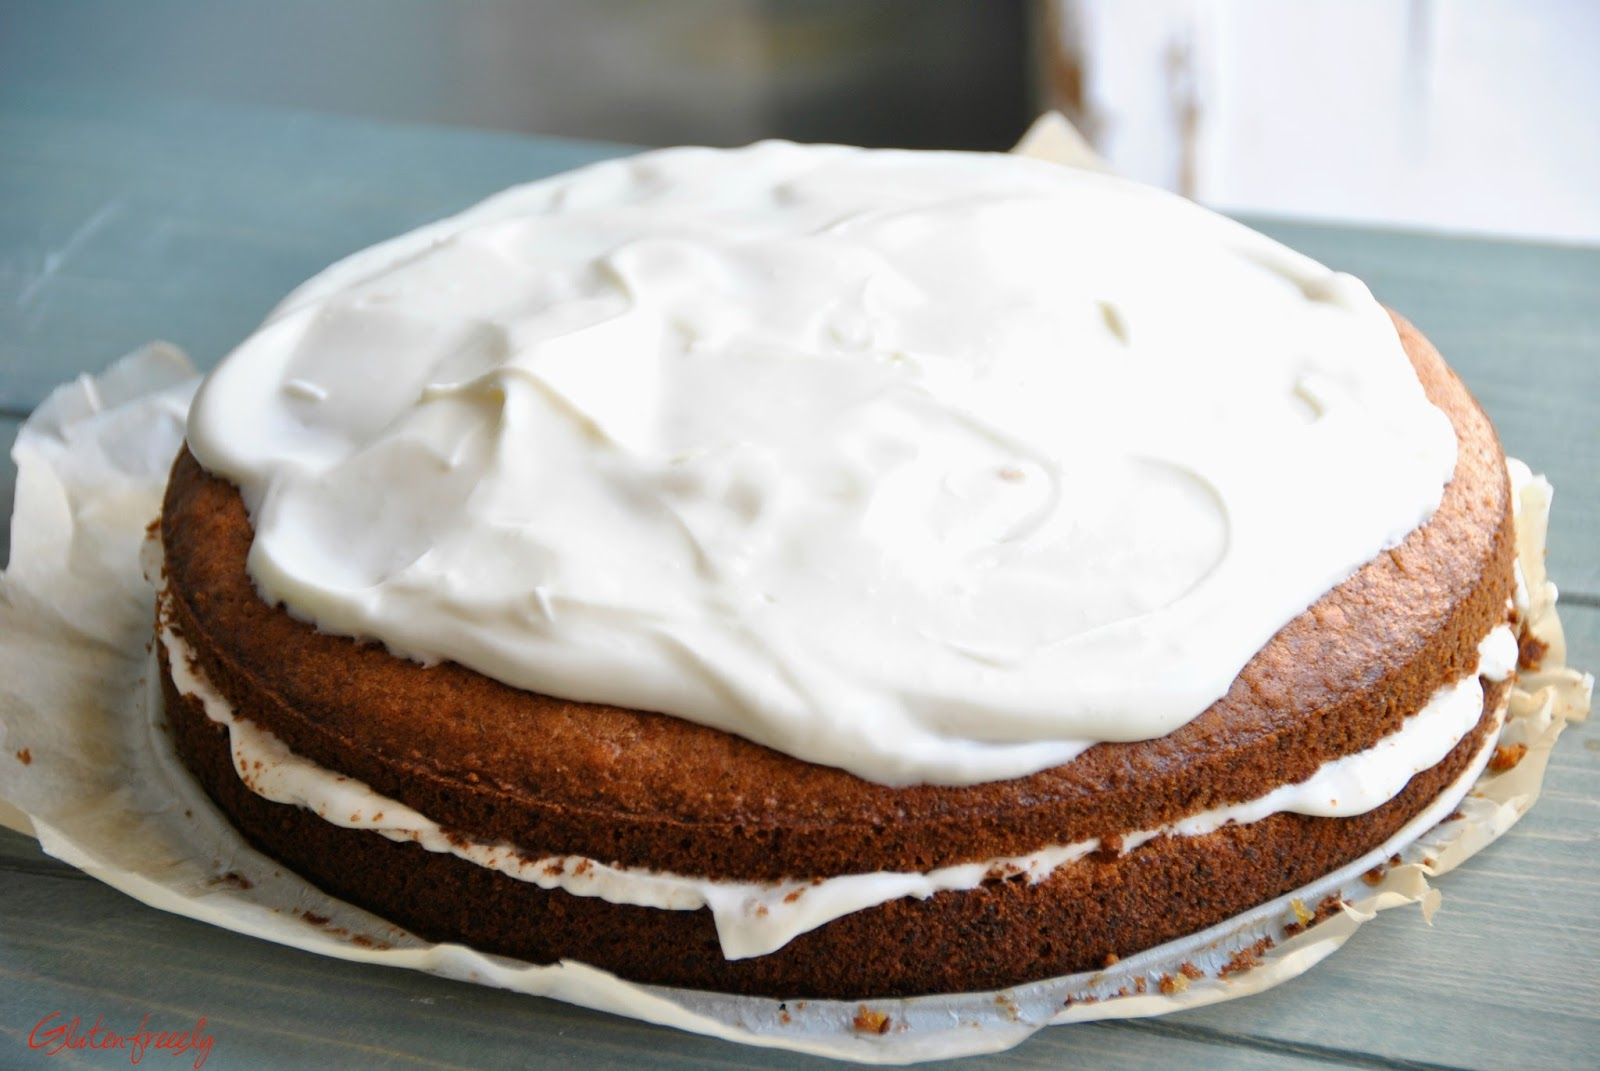 Carrot Cake Recipe Jamie Oliver: Glutenfreeely: Carrot Cake Senza Glutine Per Ripartire